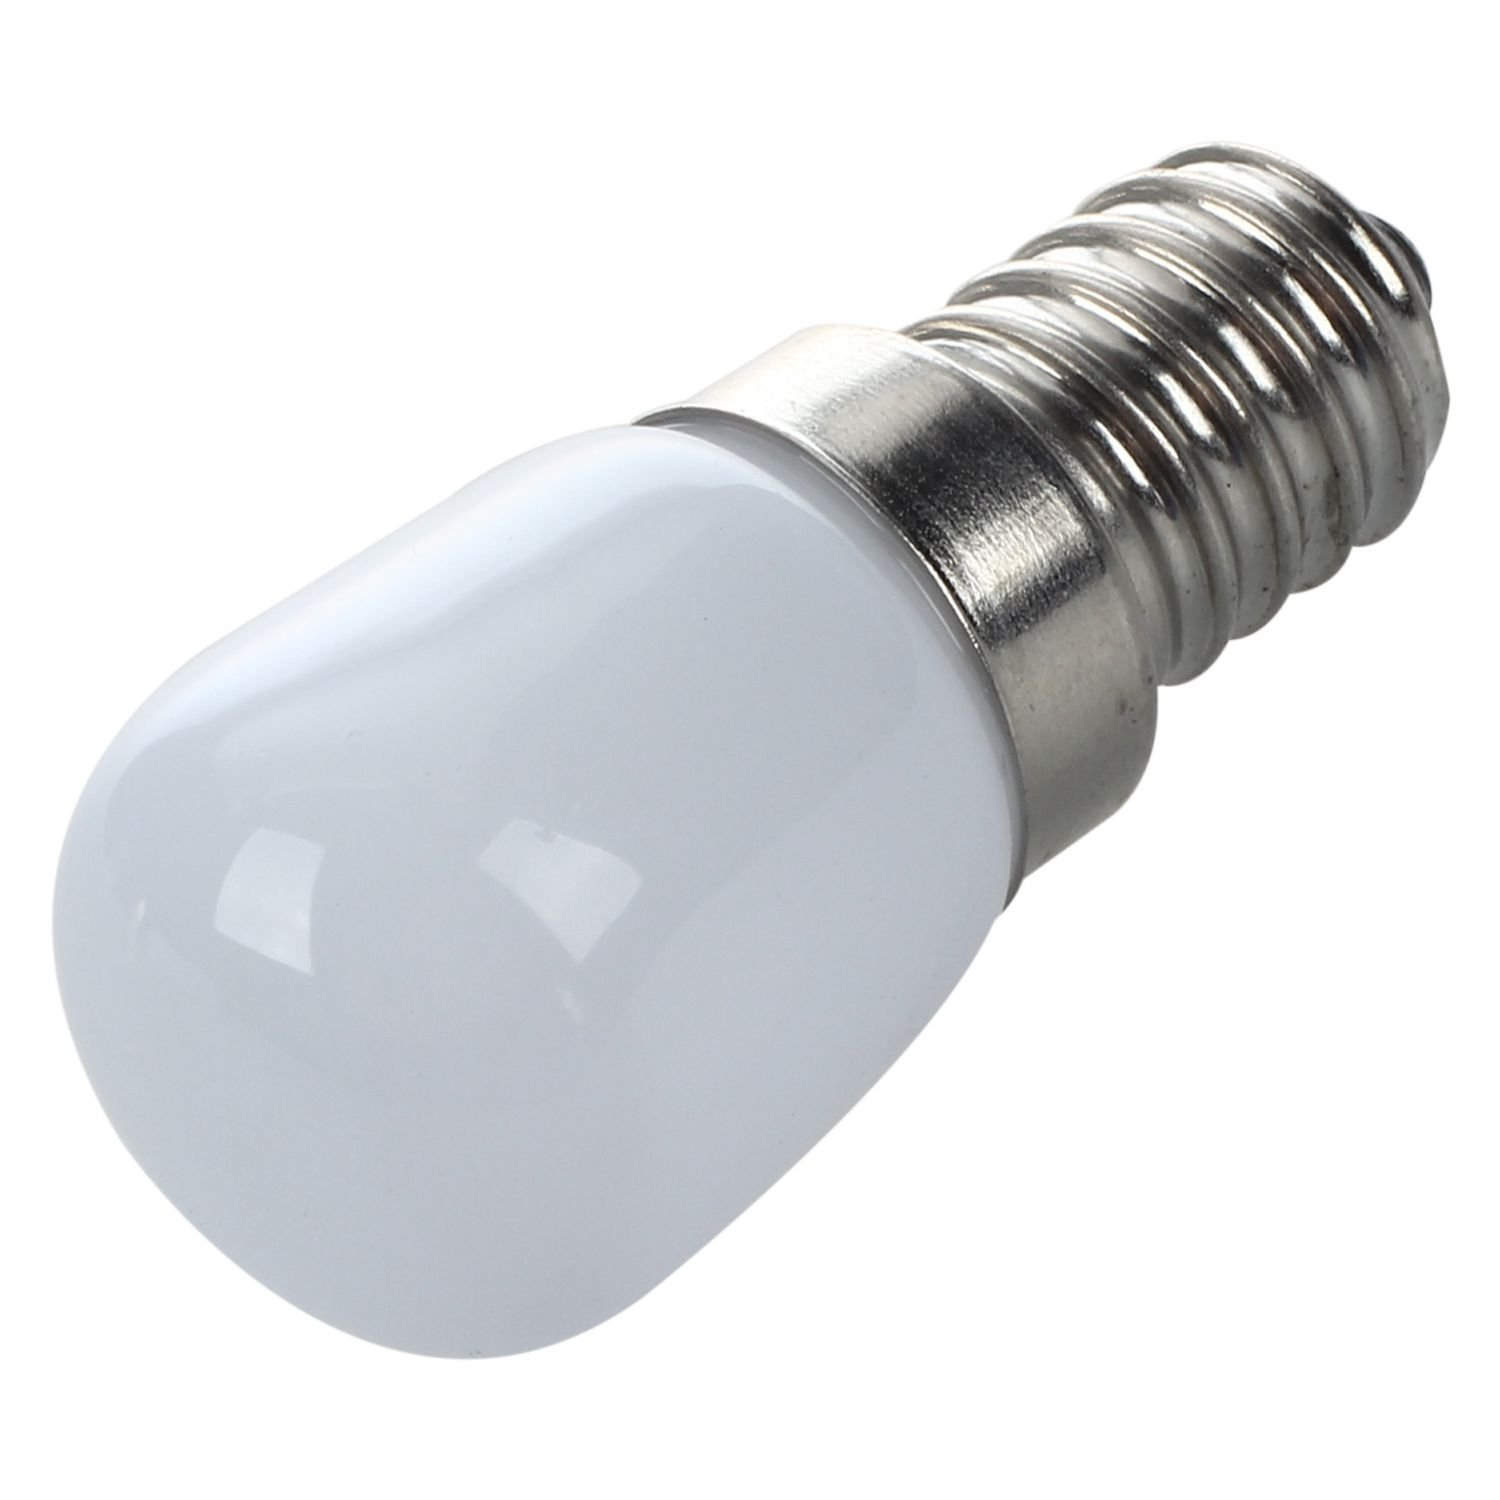 Promotion! 1.5W SES E14 2835 SMD Fridge Freezer LED Light Bulbs Mini Pygmy Lamp 220V Color:Warm White Pack:1Pcs